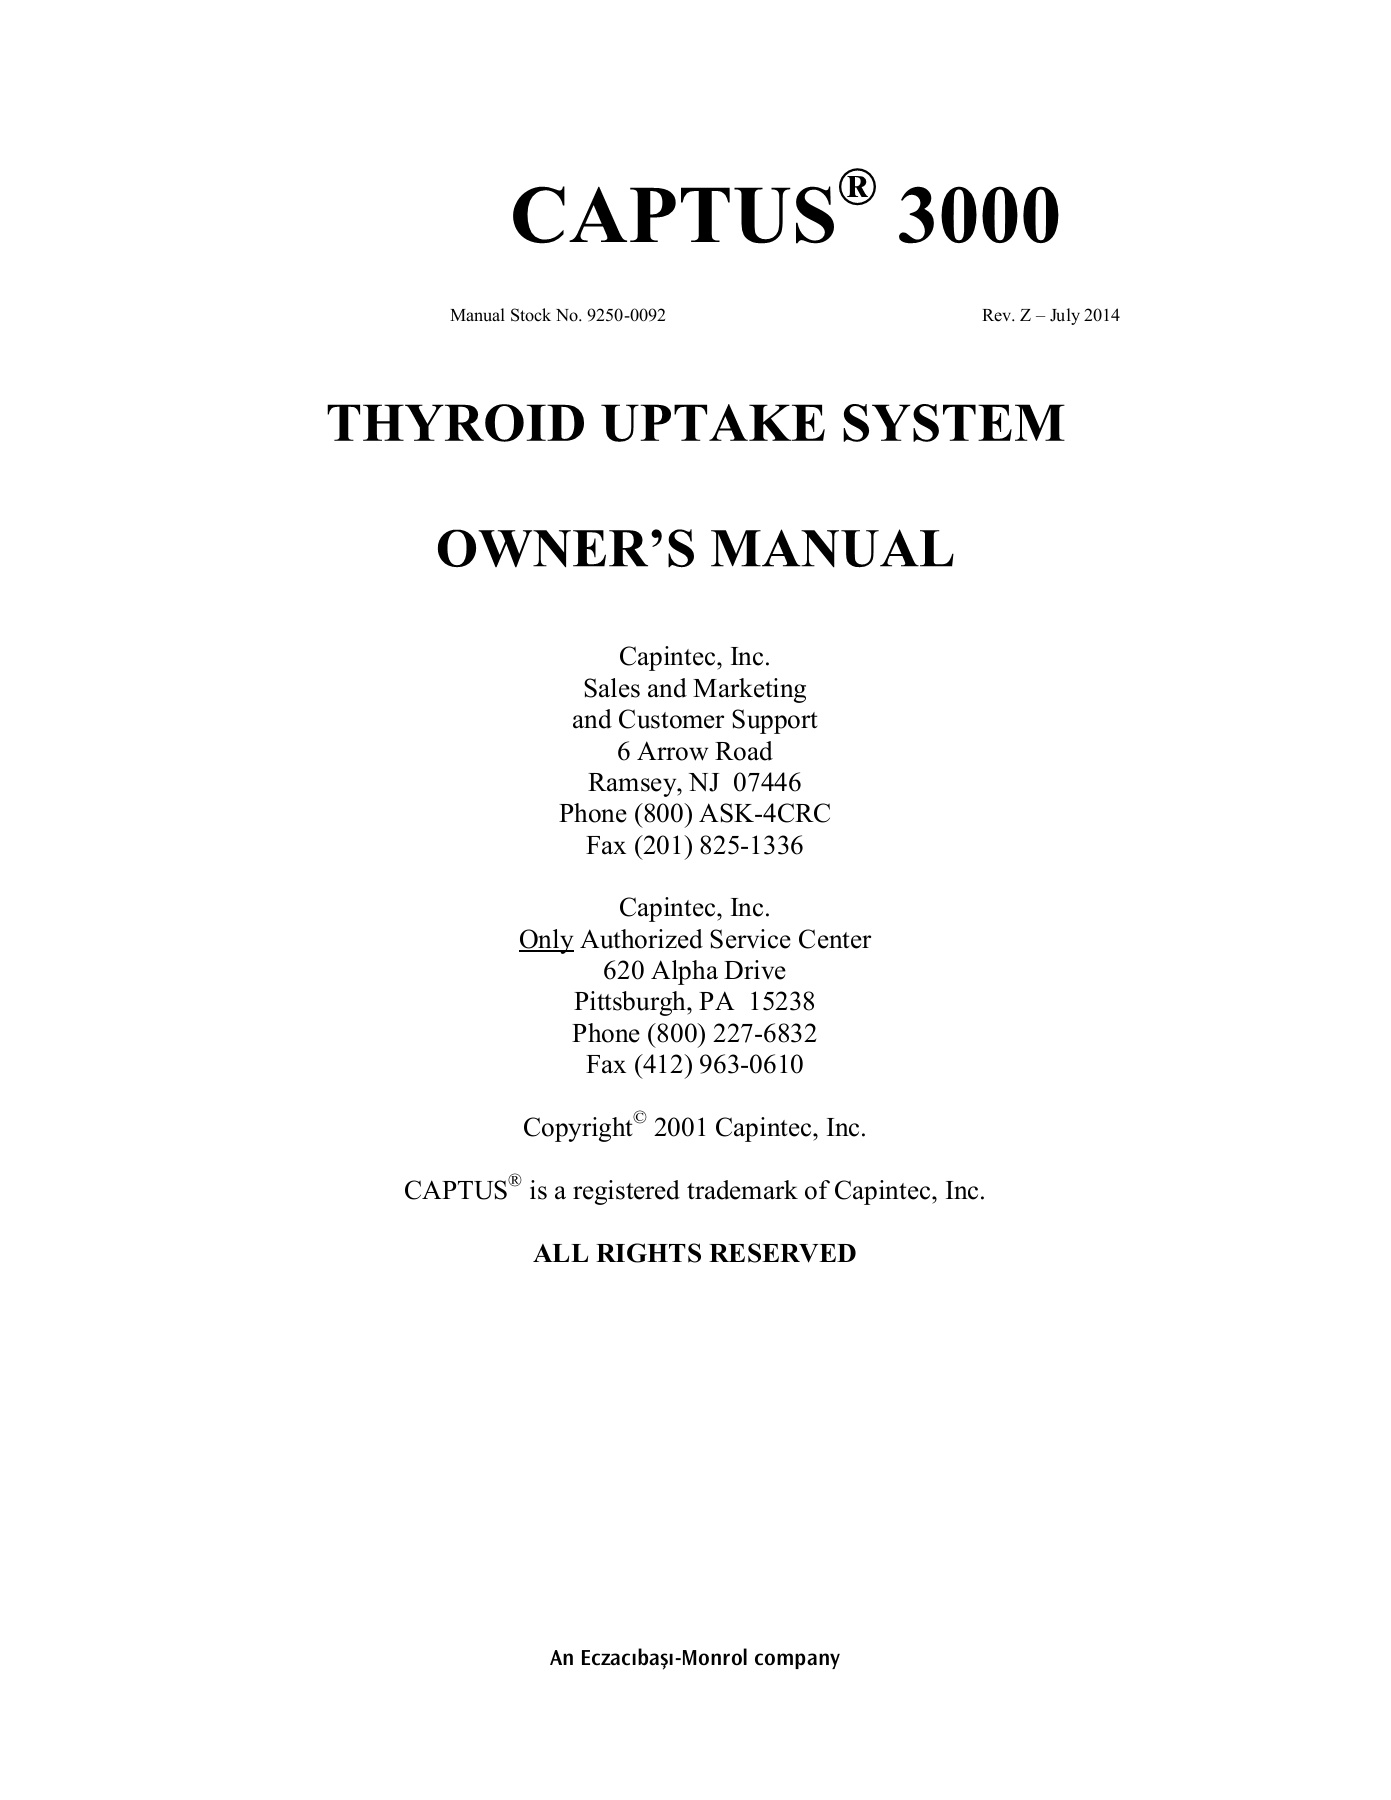 Captus 3000 Thyroid Uptake System Manual Revision Z Capintec Inc